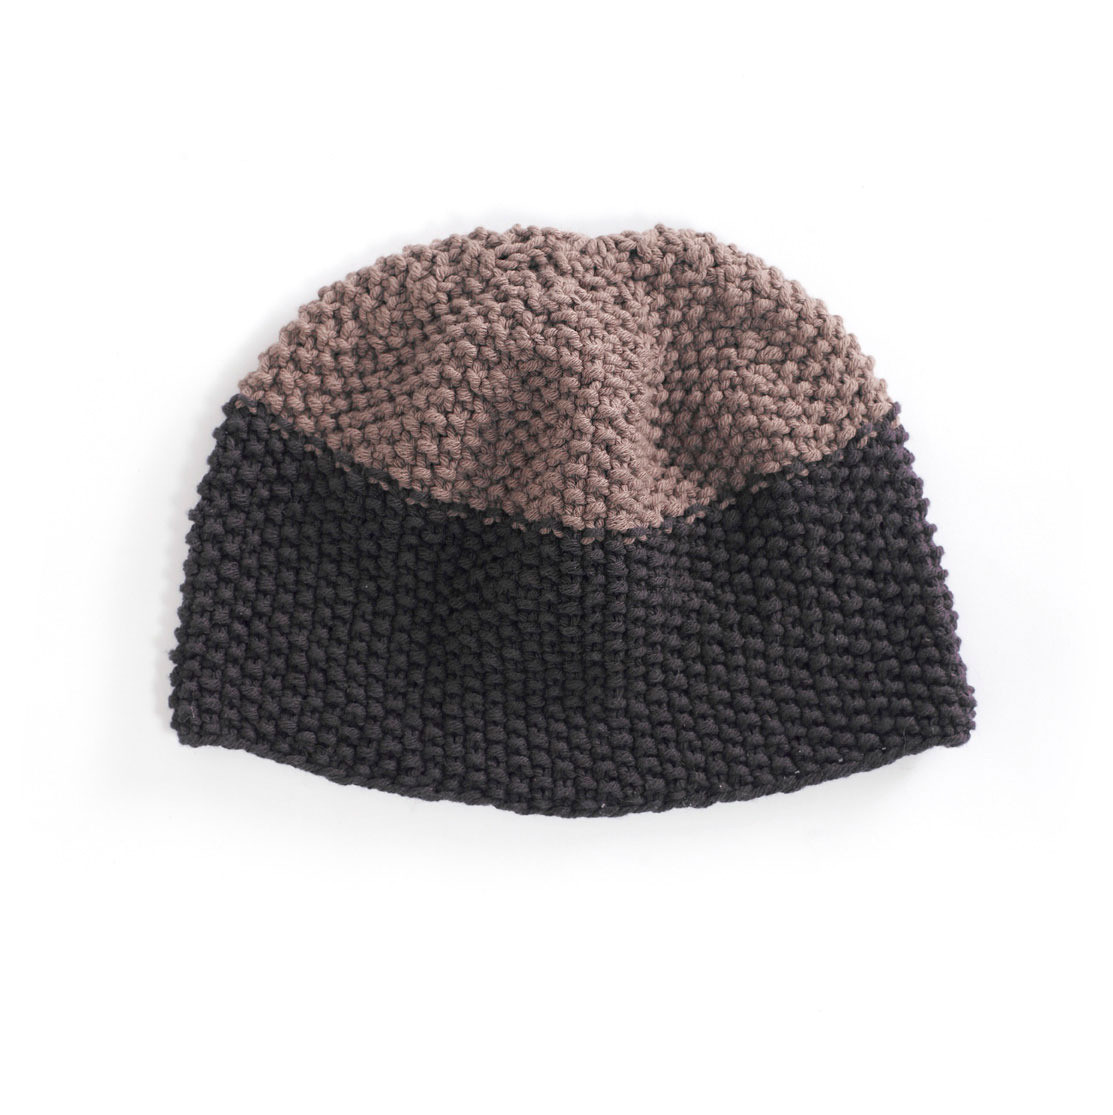 Best Of Graphite Seed Stitch Hat In Lion Brand Cotton Ease Lion Brand Free Patterns Of Perfect 46 Pictures Lion Brand Free Patterns